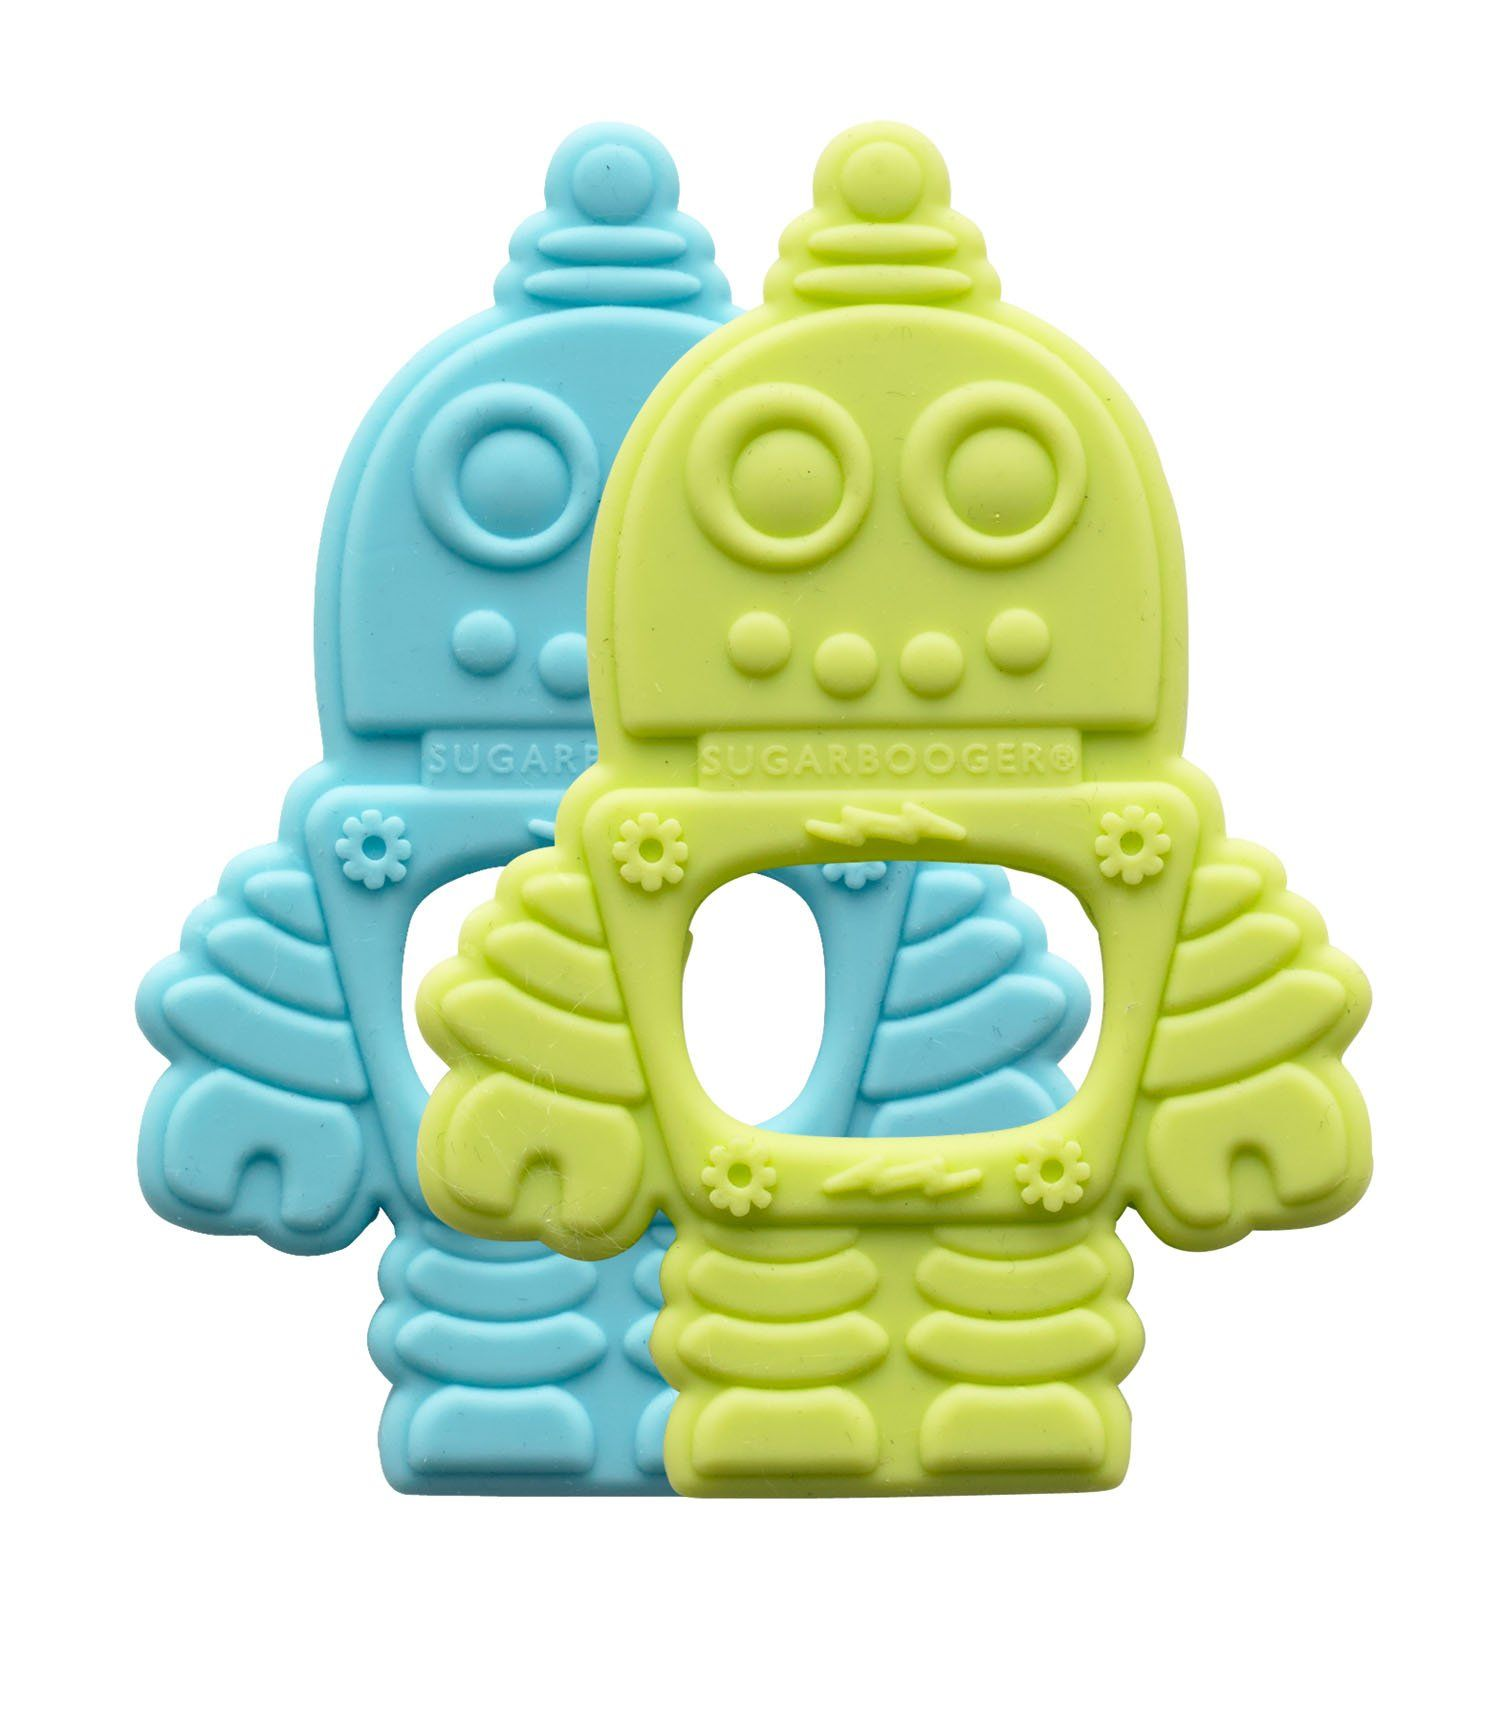 Sugarbooger Silicone Teether Retro Robot 2 Count Birthday Us Baby 3m